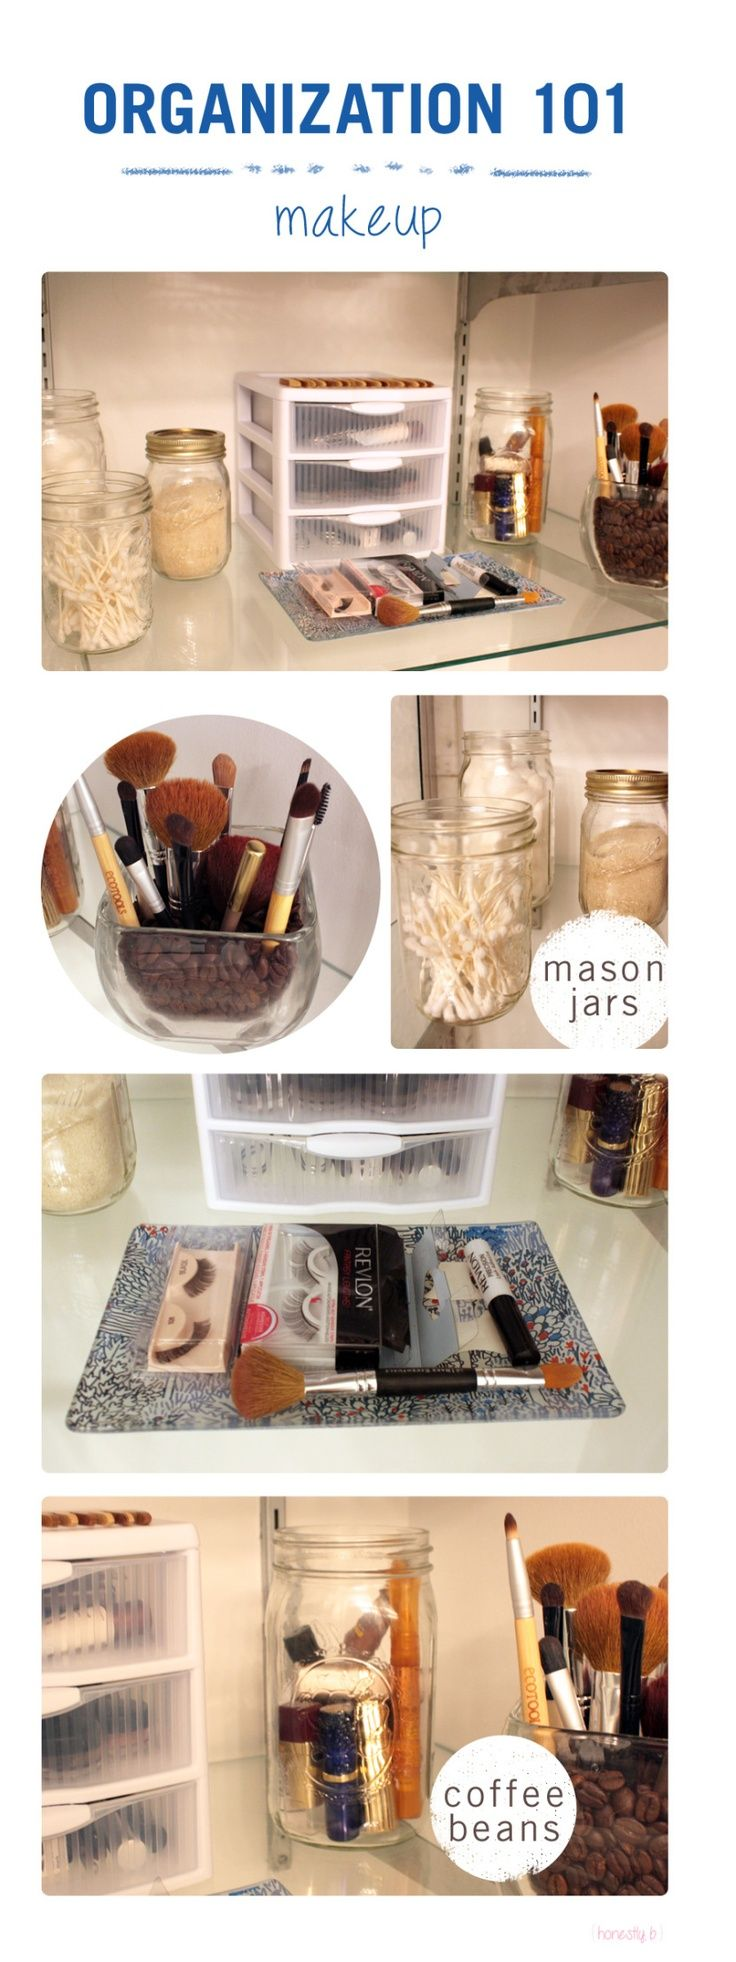 best organization images on pinterest cleaning home ideas and